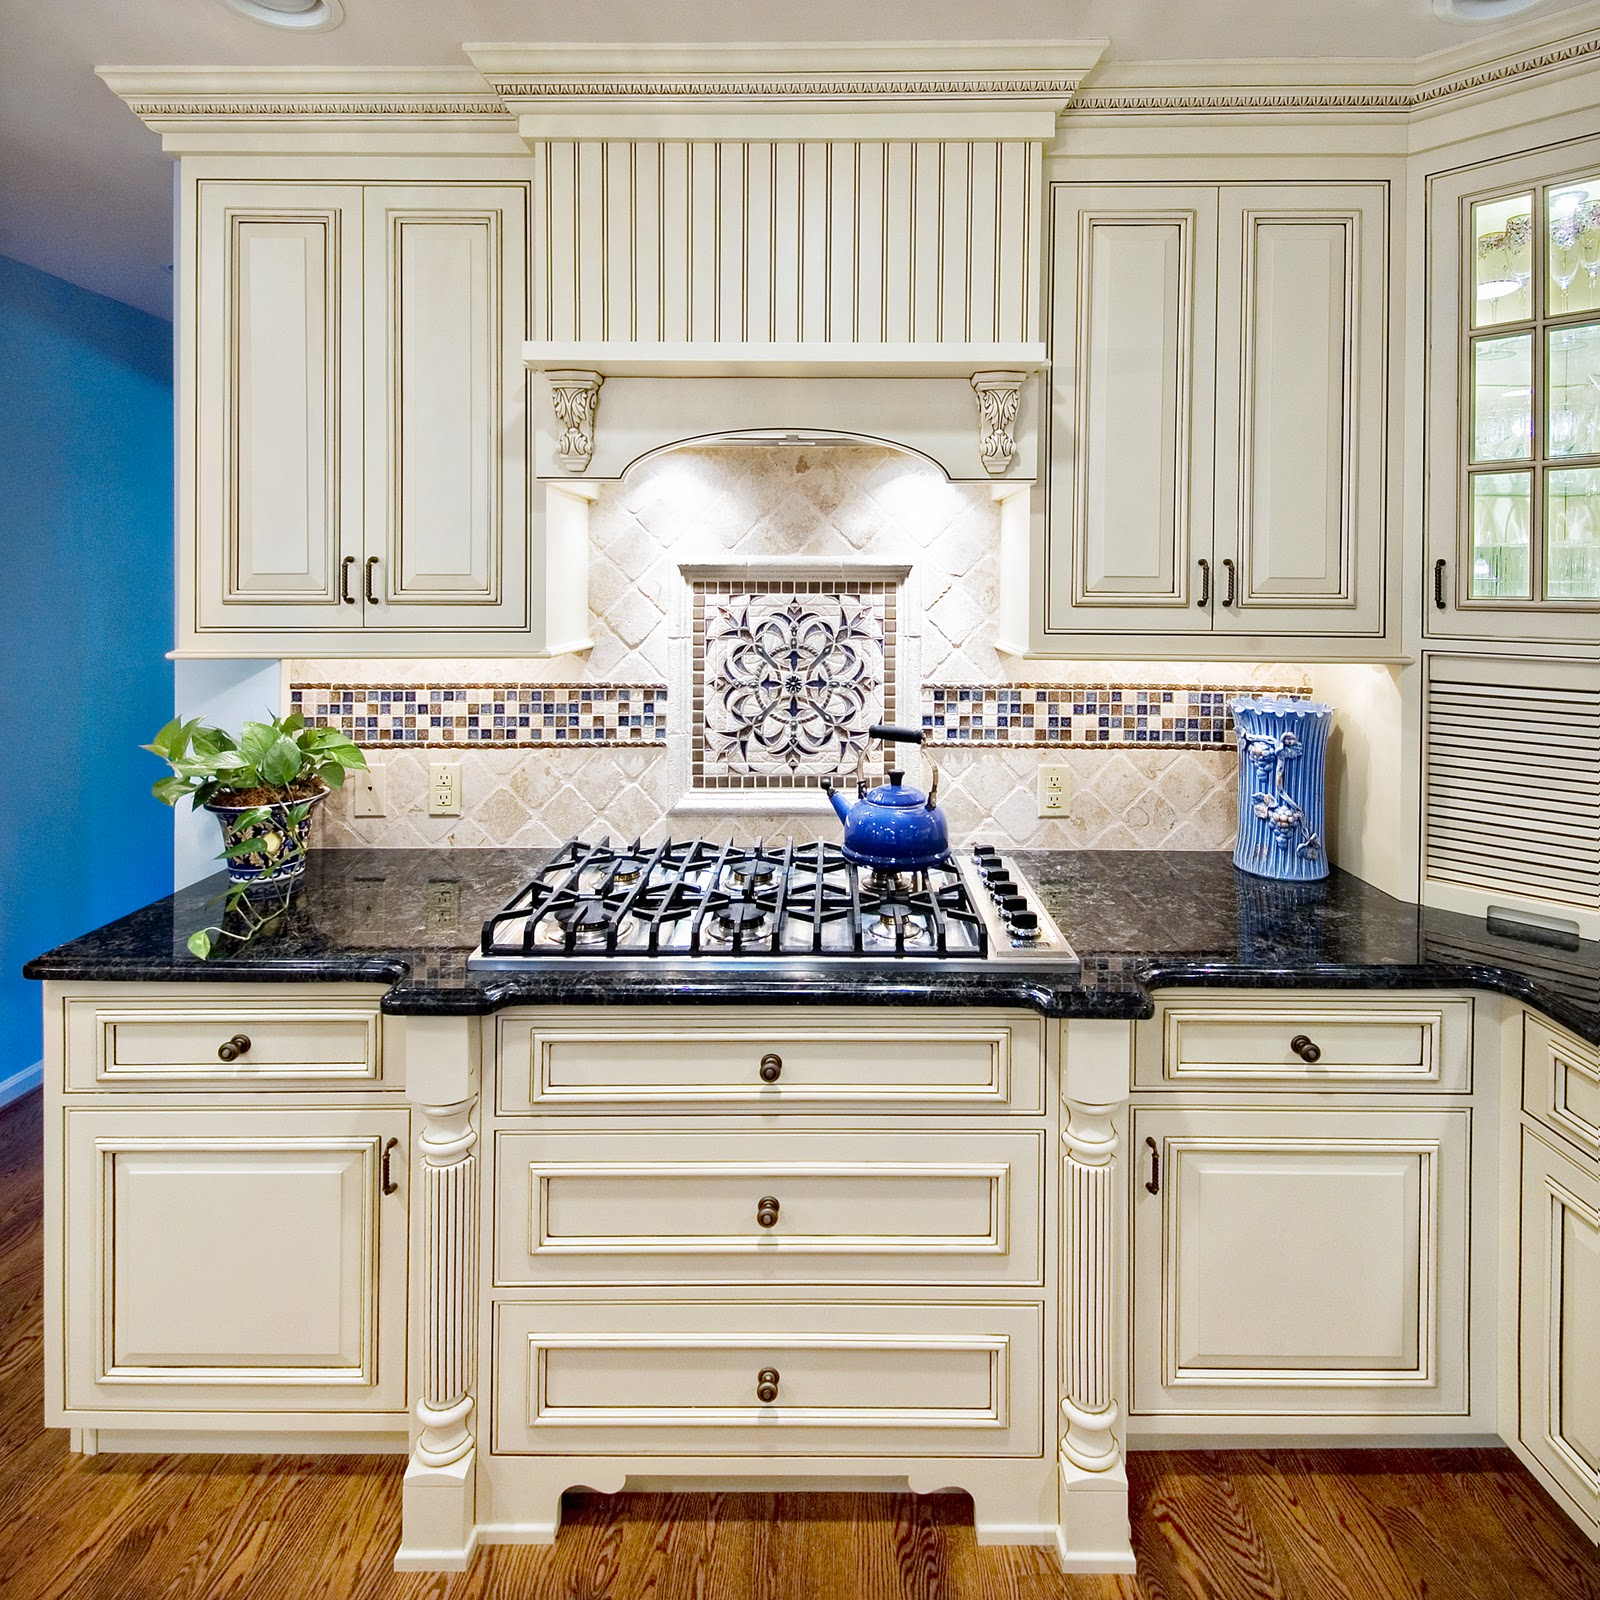 a touch of blue blue kitchen cabinets